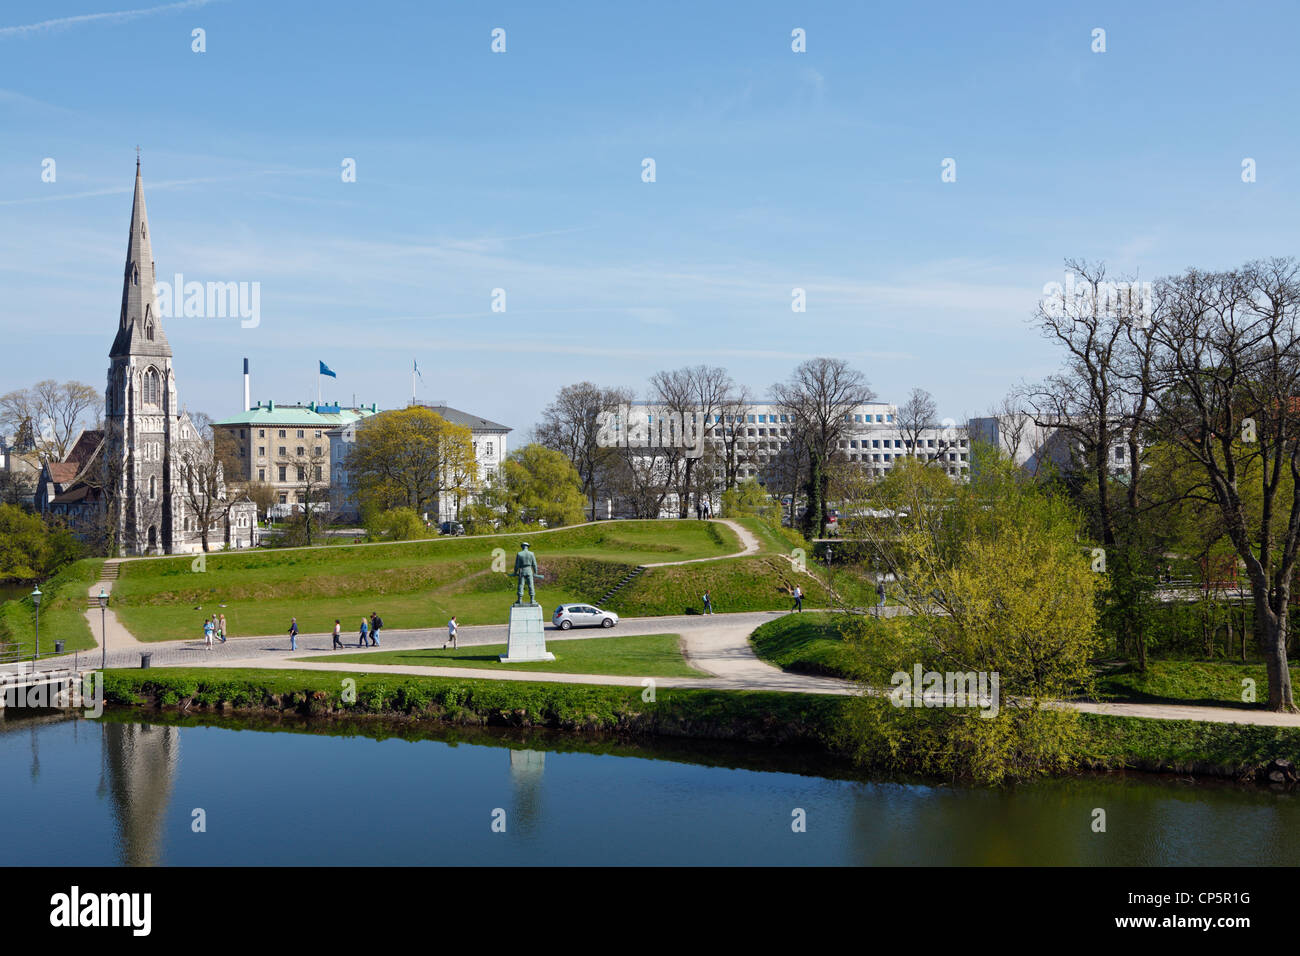 View from the ramparts of the citadel Kastellet over the moat to the English Church, St. Alban's, and the domicile - Stock Image